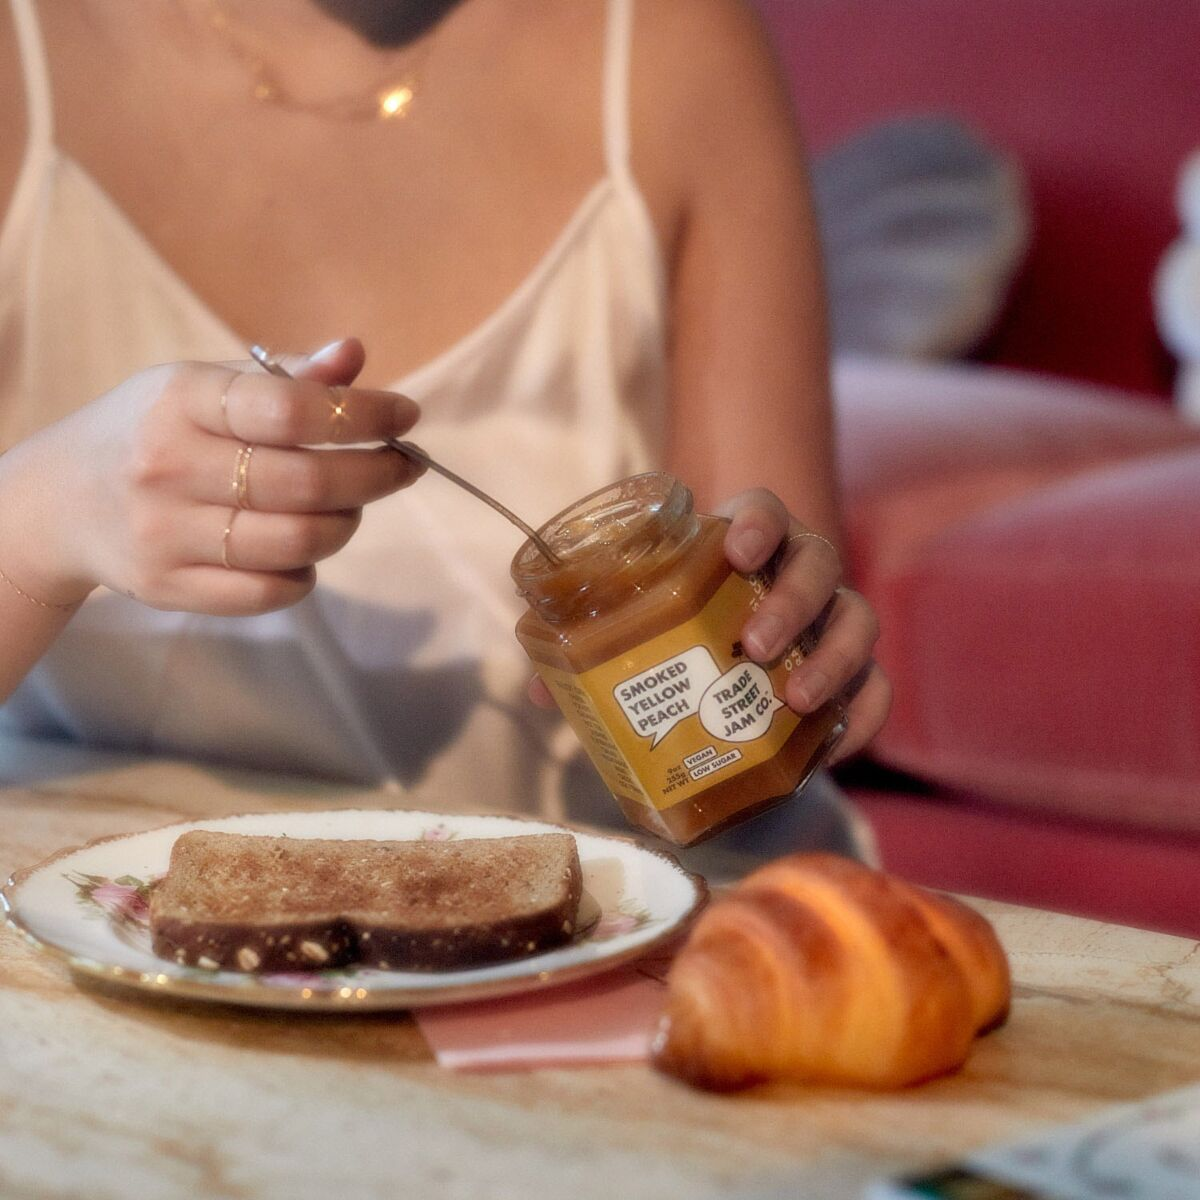 Smoked Peach Jam image